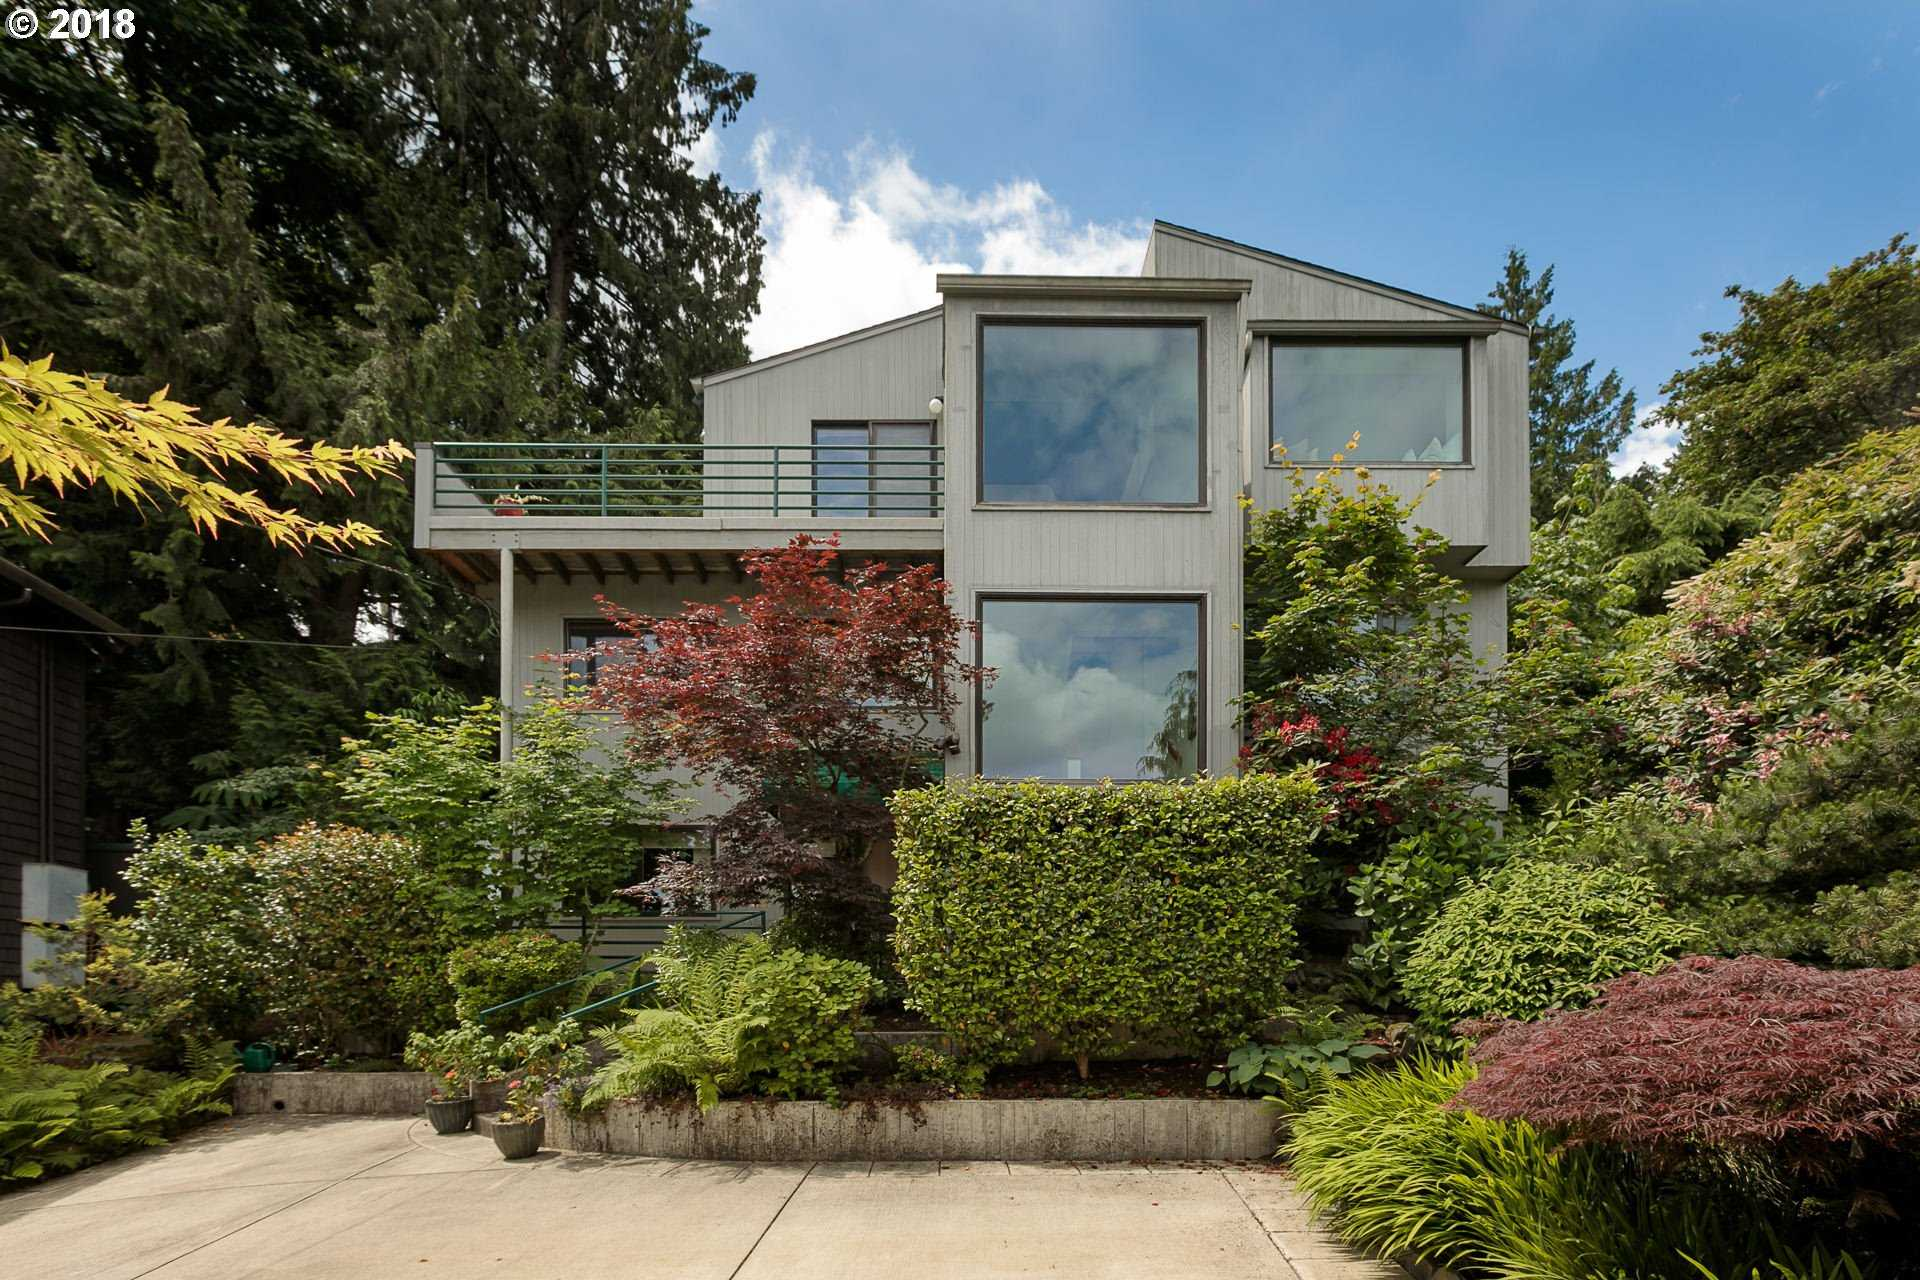 $749,000 - 2Br/2Ba -  for Sale in Willamette Heights, Portland